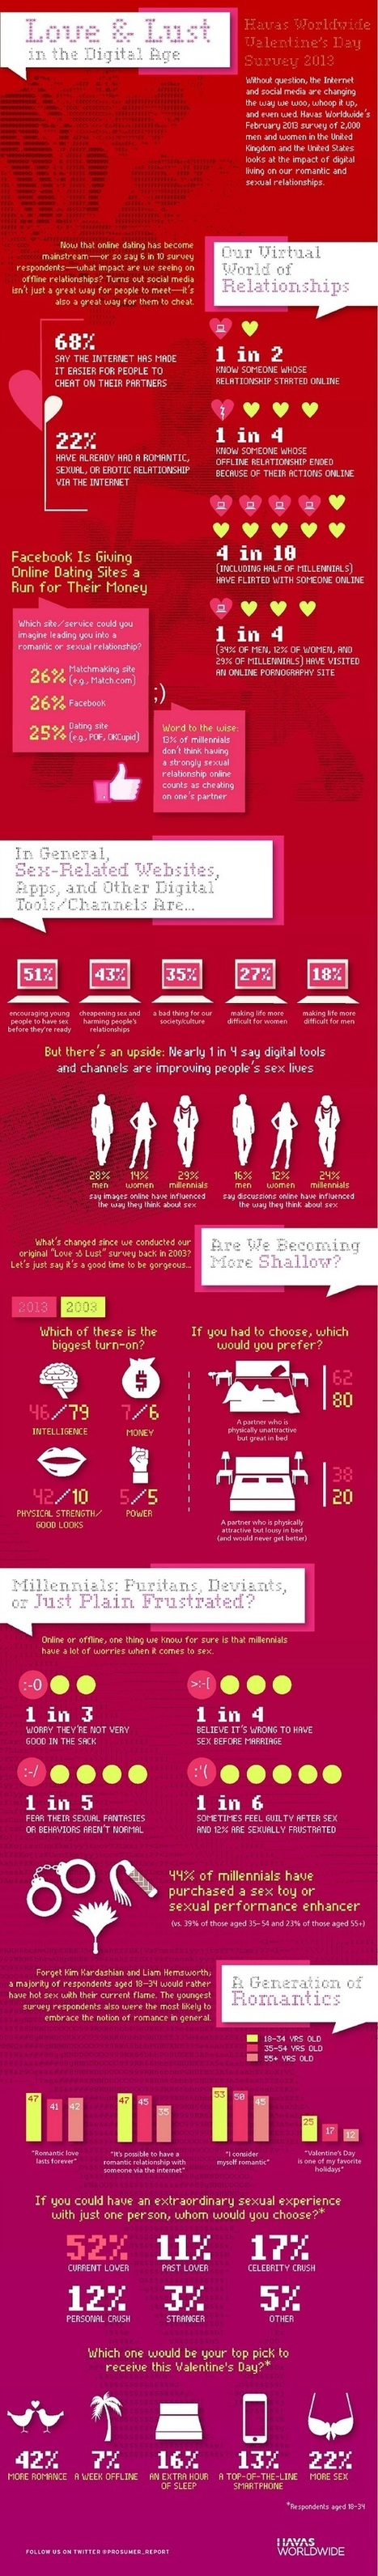 Love & Lust in the Digital Age [Infographic]   Educating an educator   Scoop.it